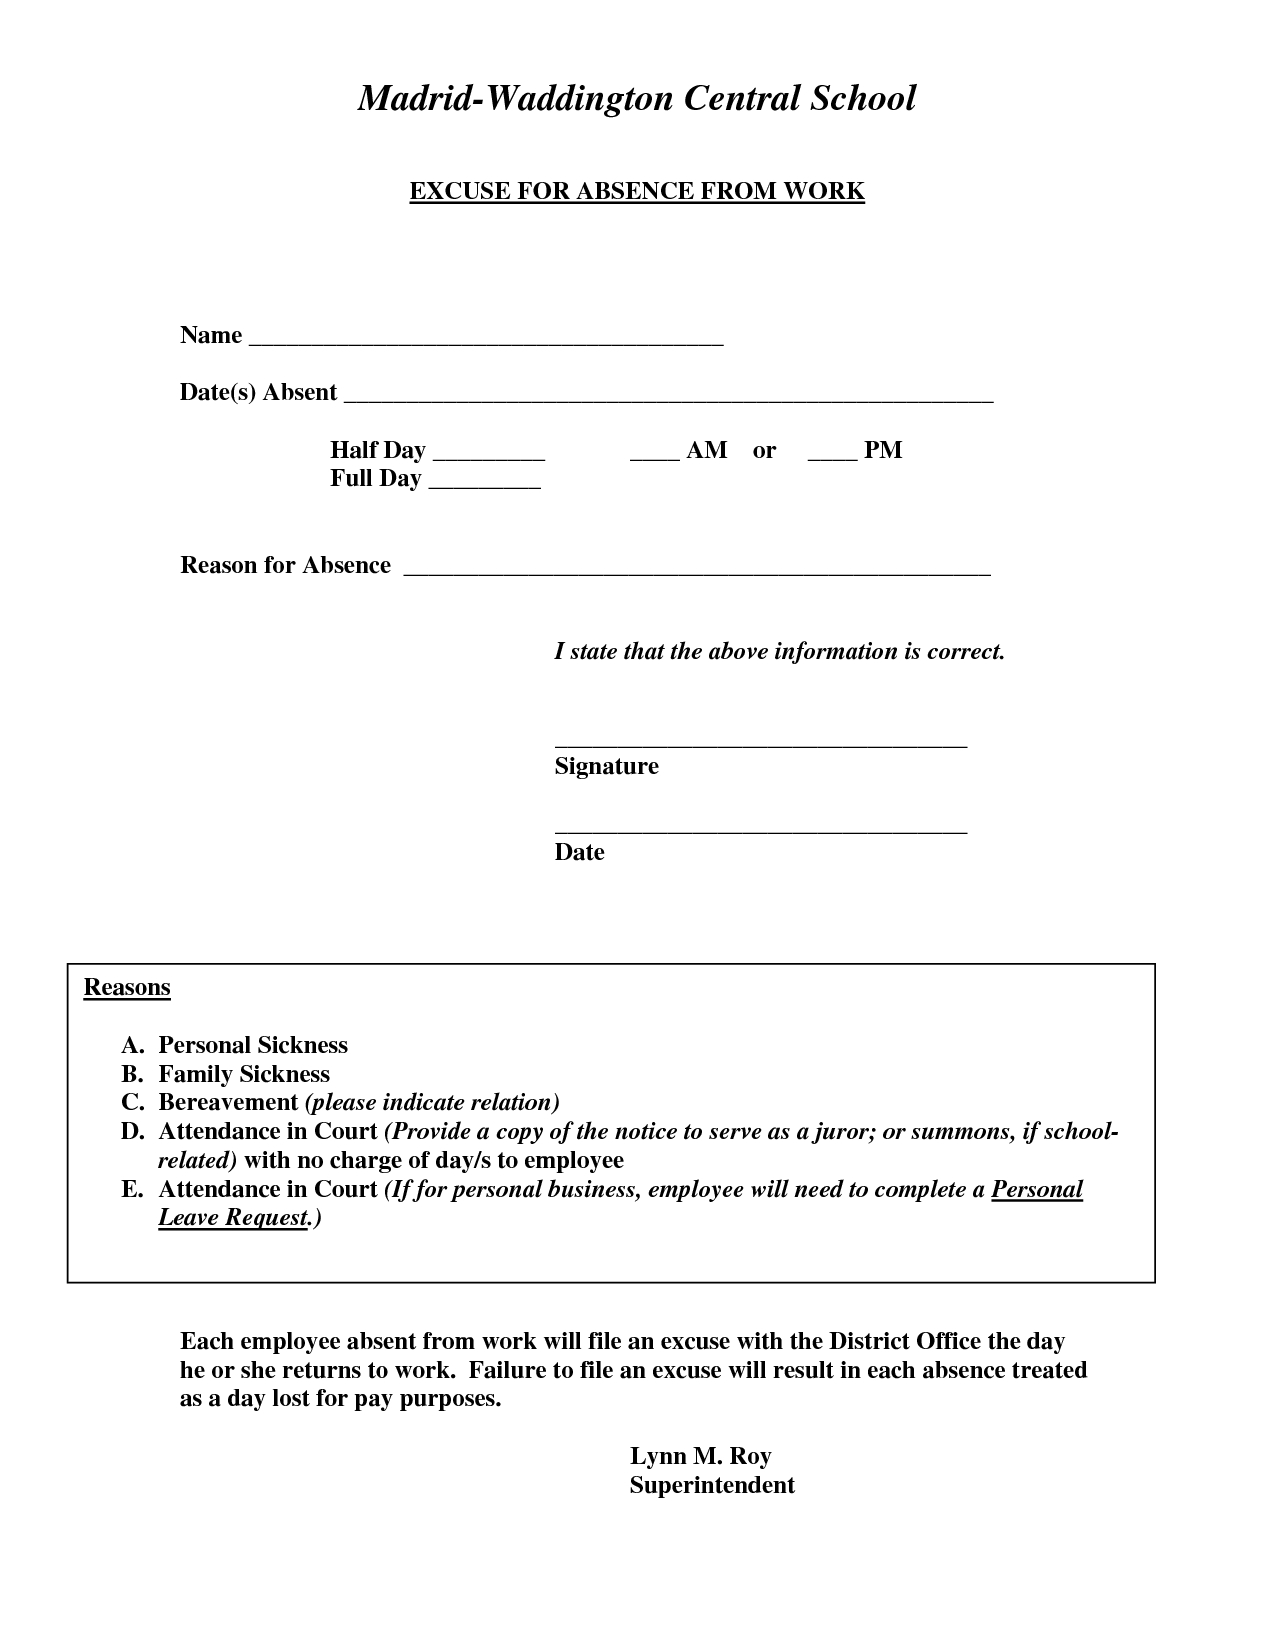 Doctors Excuse For Work Template | Excuse For Absence From Work - Printable Fake Doctors Notes Free